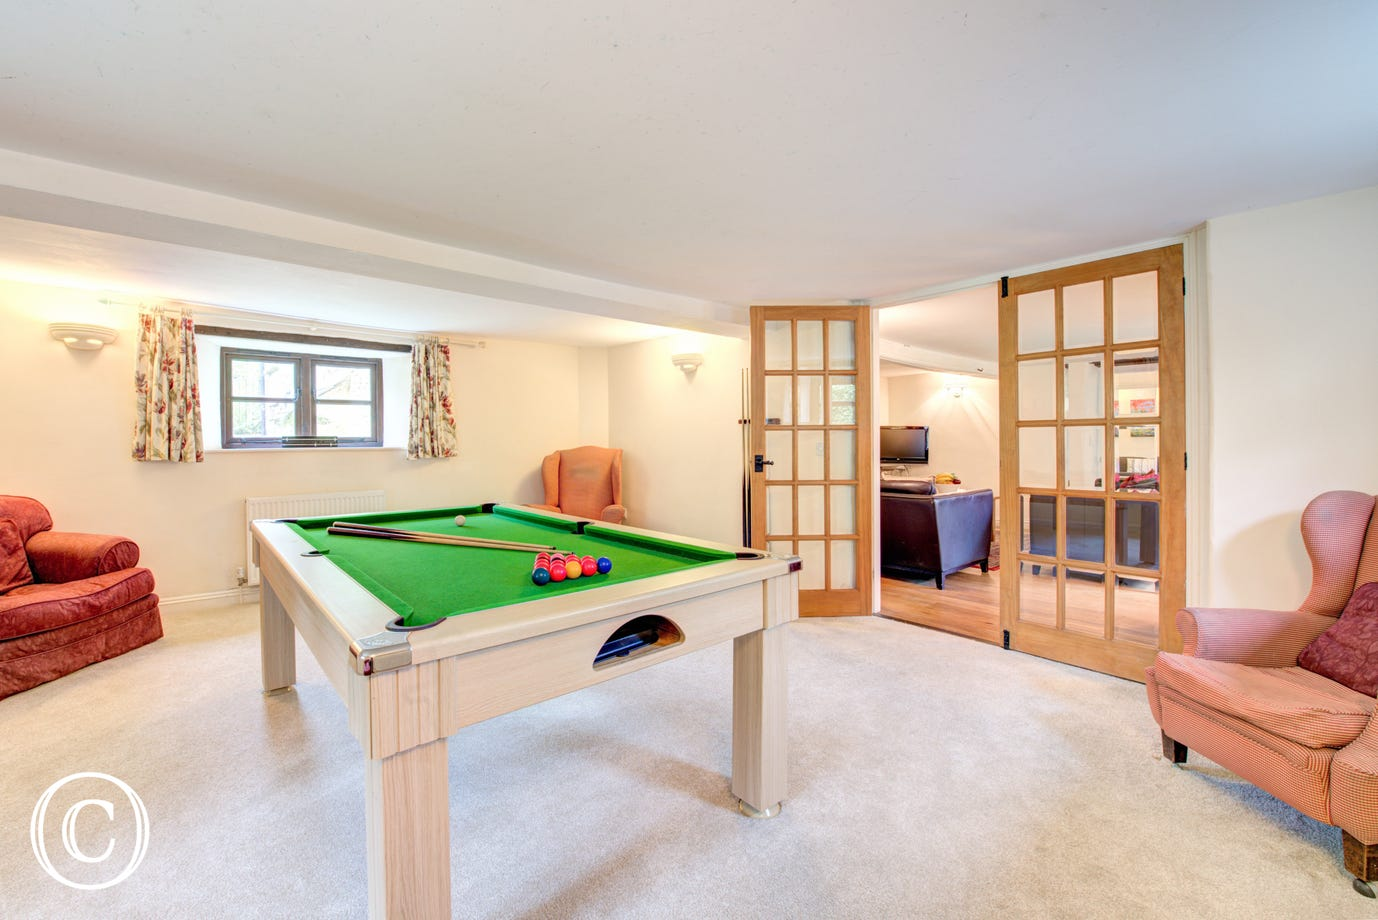 Challenge your friends to a game of Pool in the Pool room